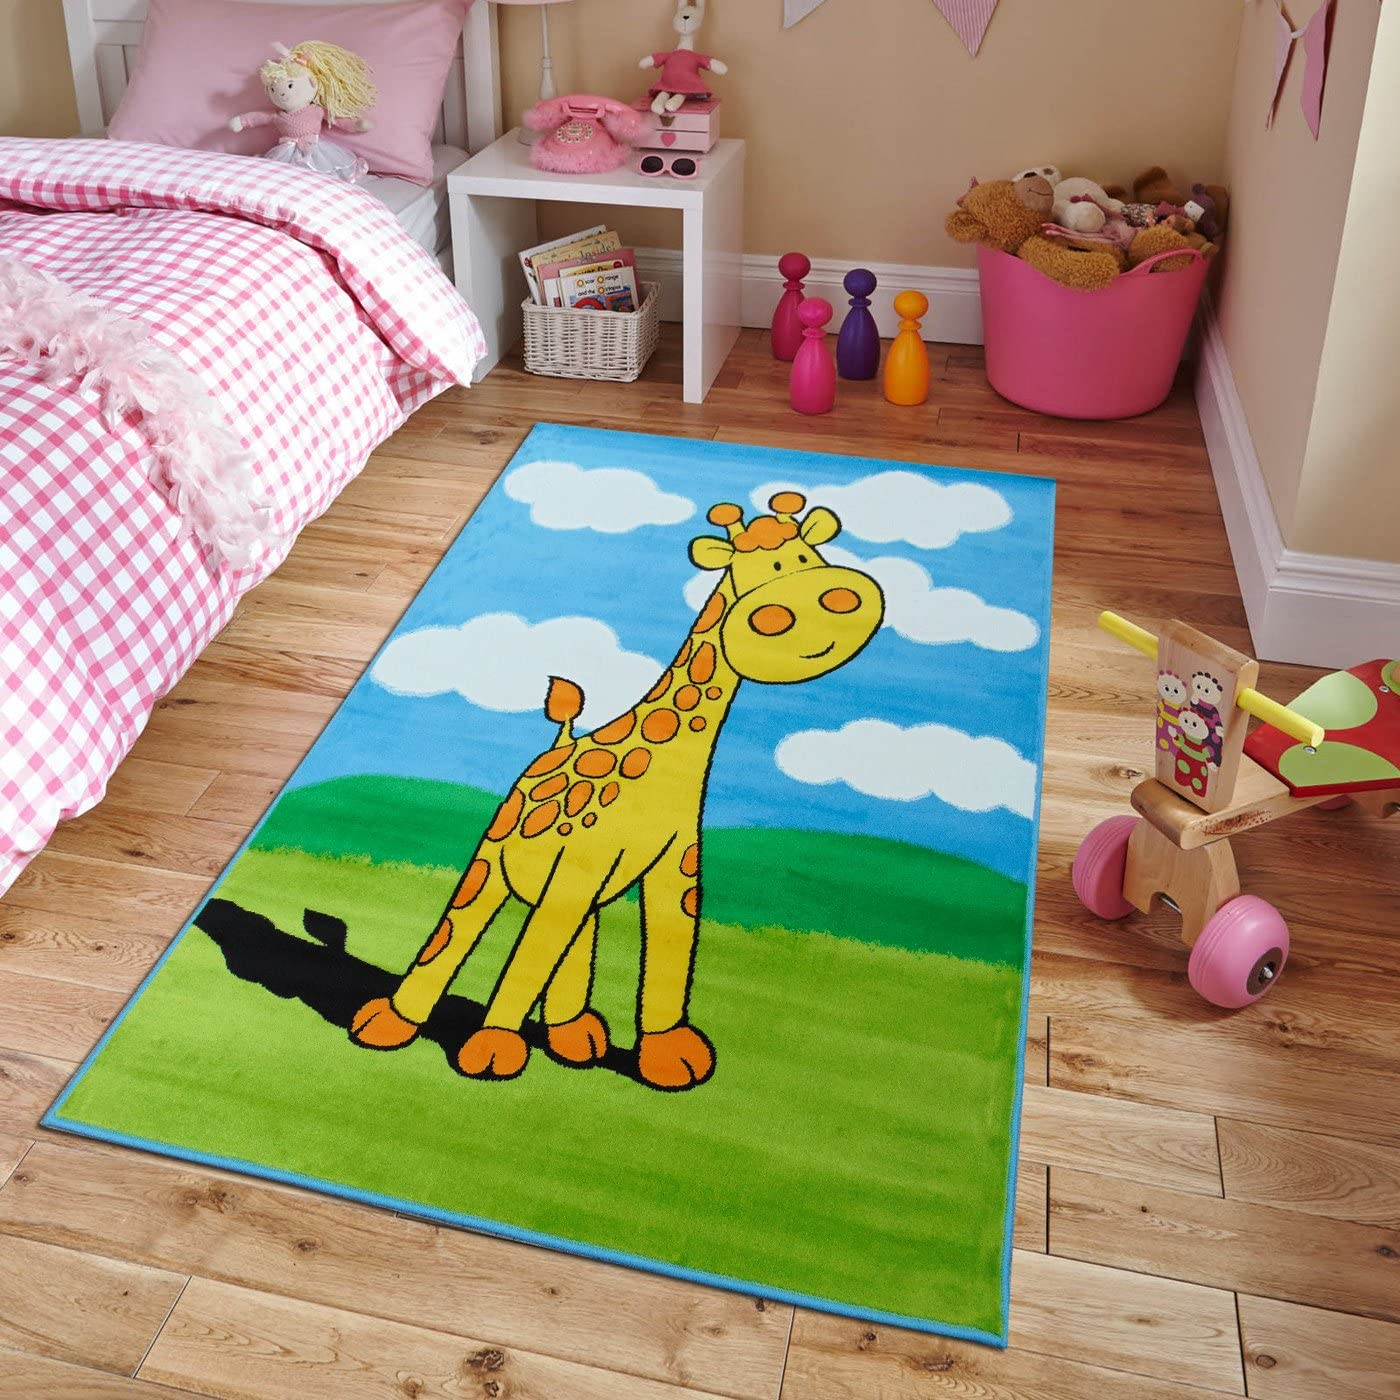 New Soft Adorable Kids Rugs Contemporary Playtime Giraffe Island Kids Area Rug